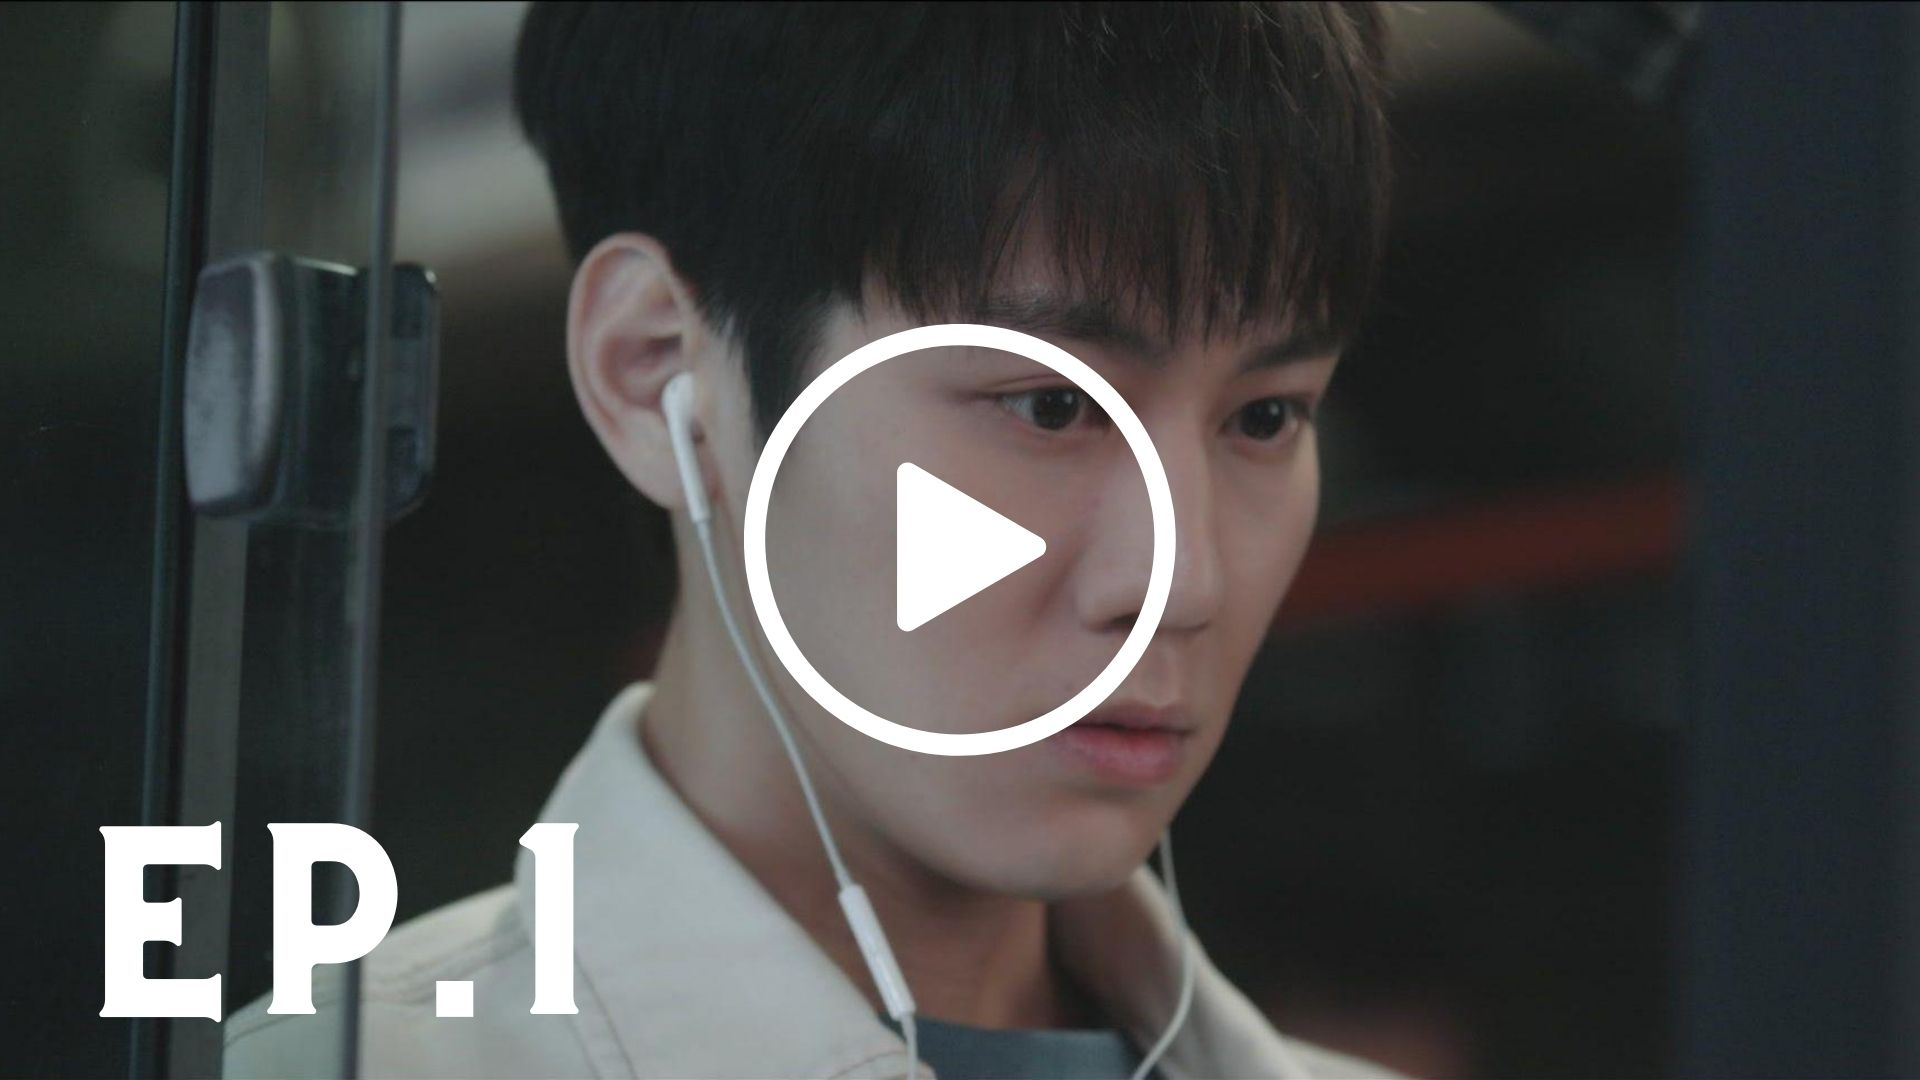 Wish You : Your Melody From My Heart: Episode 1